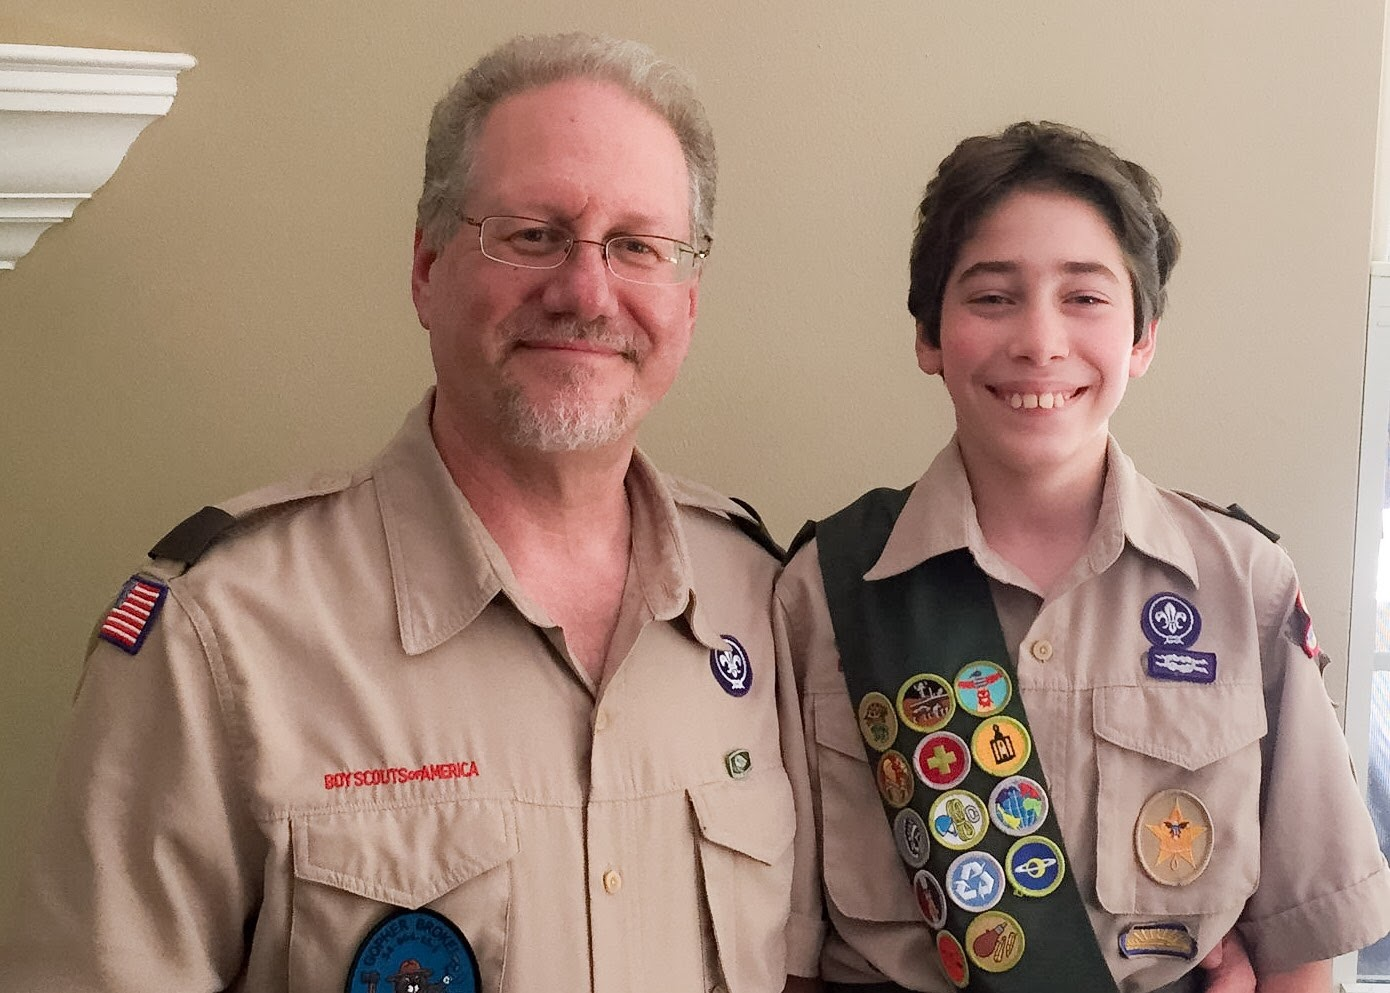 Father and Son in BSA uniforms